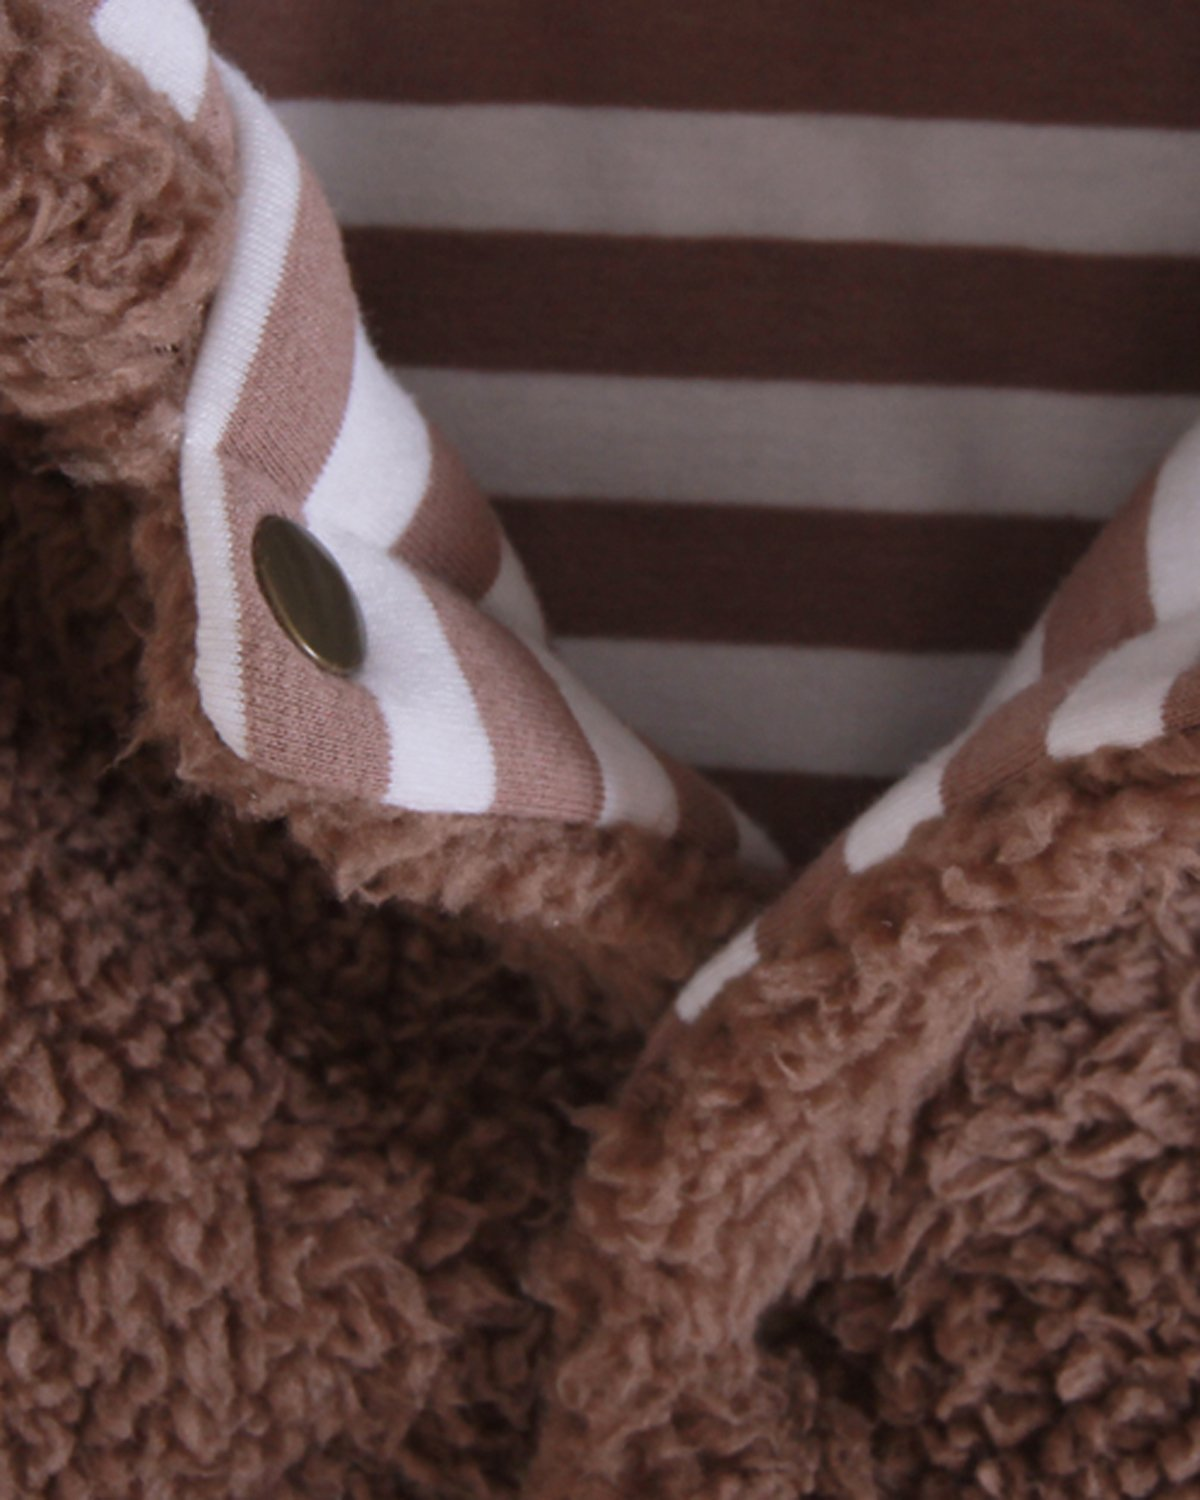 Kidsform Infant Winter Snowsuit Baby Bear Hoodie Romper Outfit Fleece Bunting Pram Suit Outerwear Coat Coveralls 0-24M Brown 3-6M by Kidsform (Image #4)